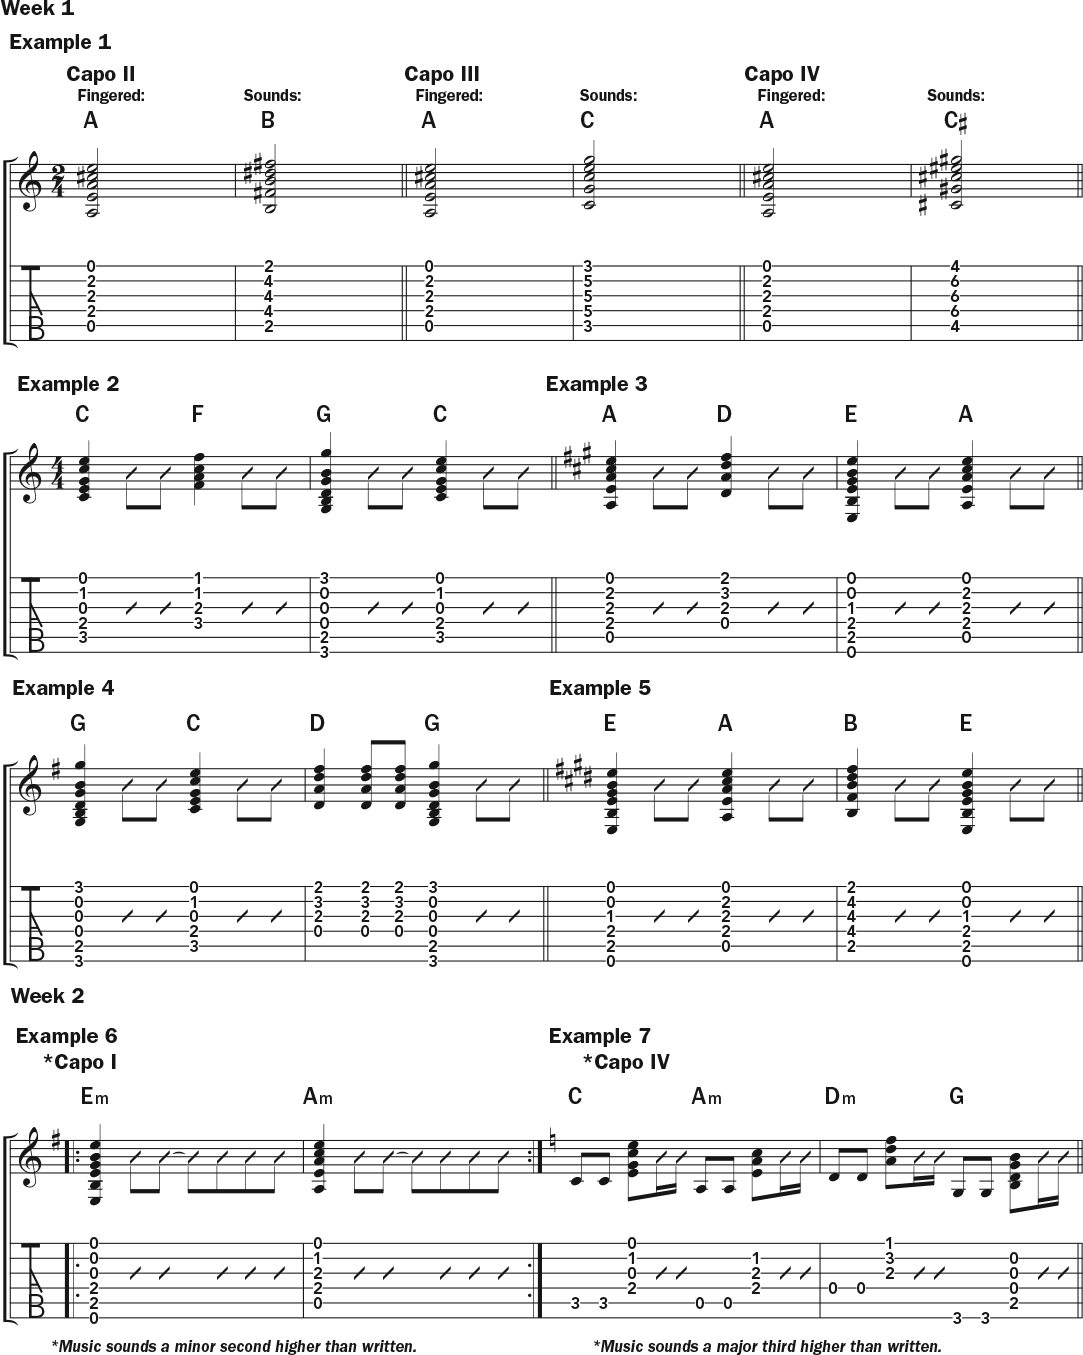 musical notation and tablature for Jamie Stillway's weekly workout acoustic guitar lesson on how to use a capo